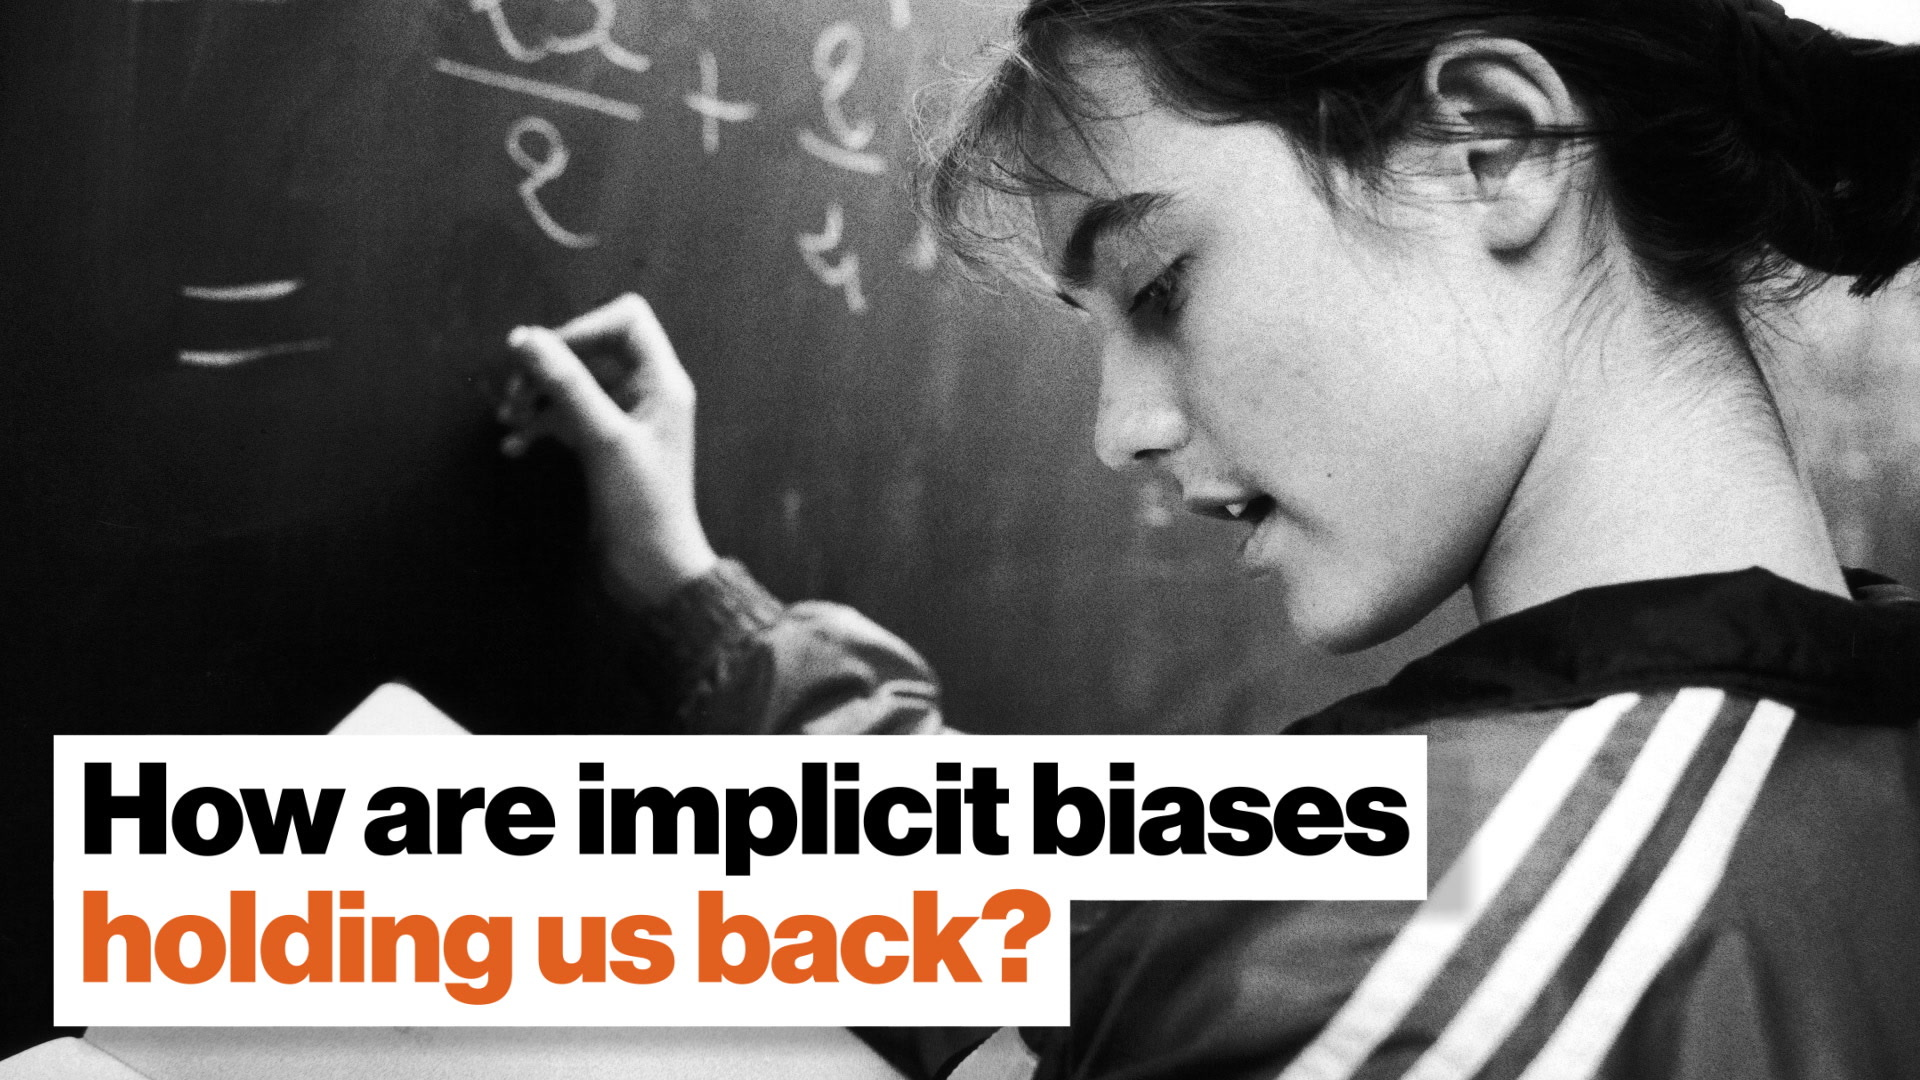 How are implicit biases holding us back?